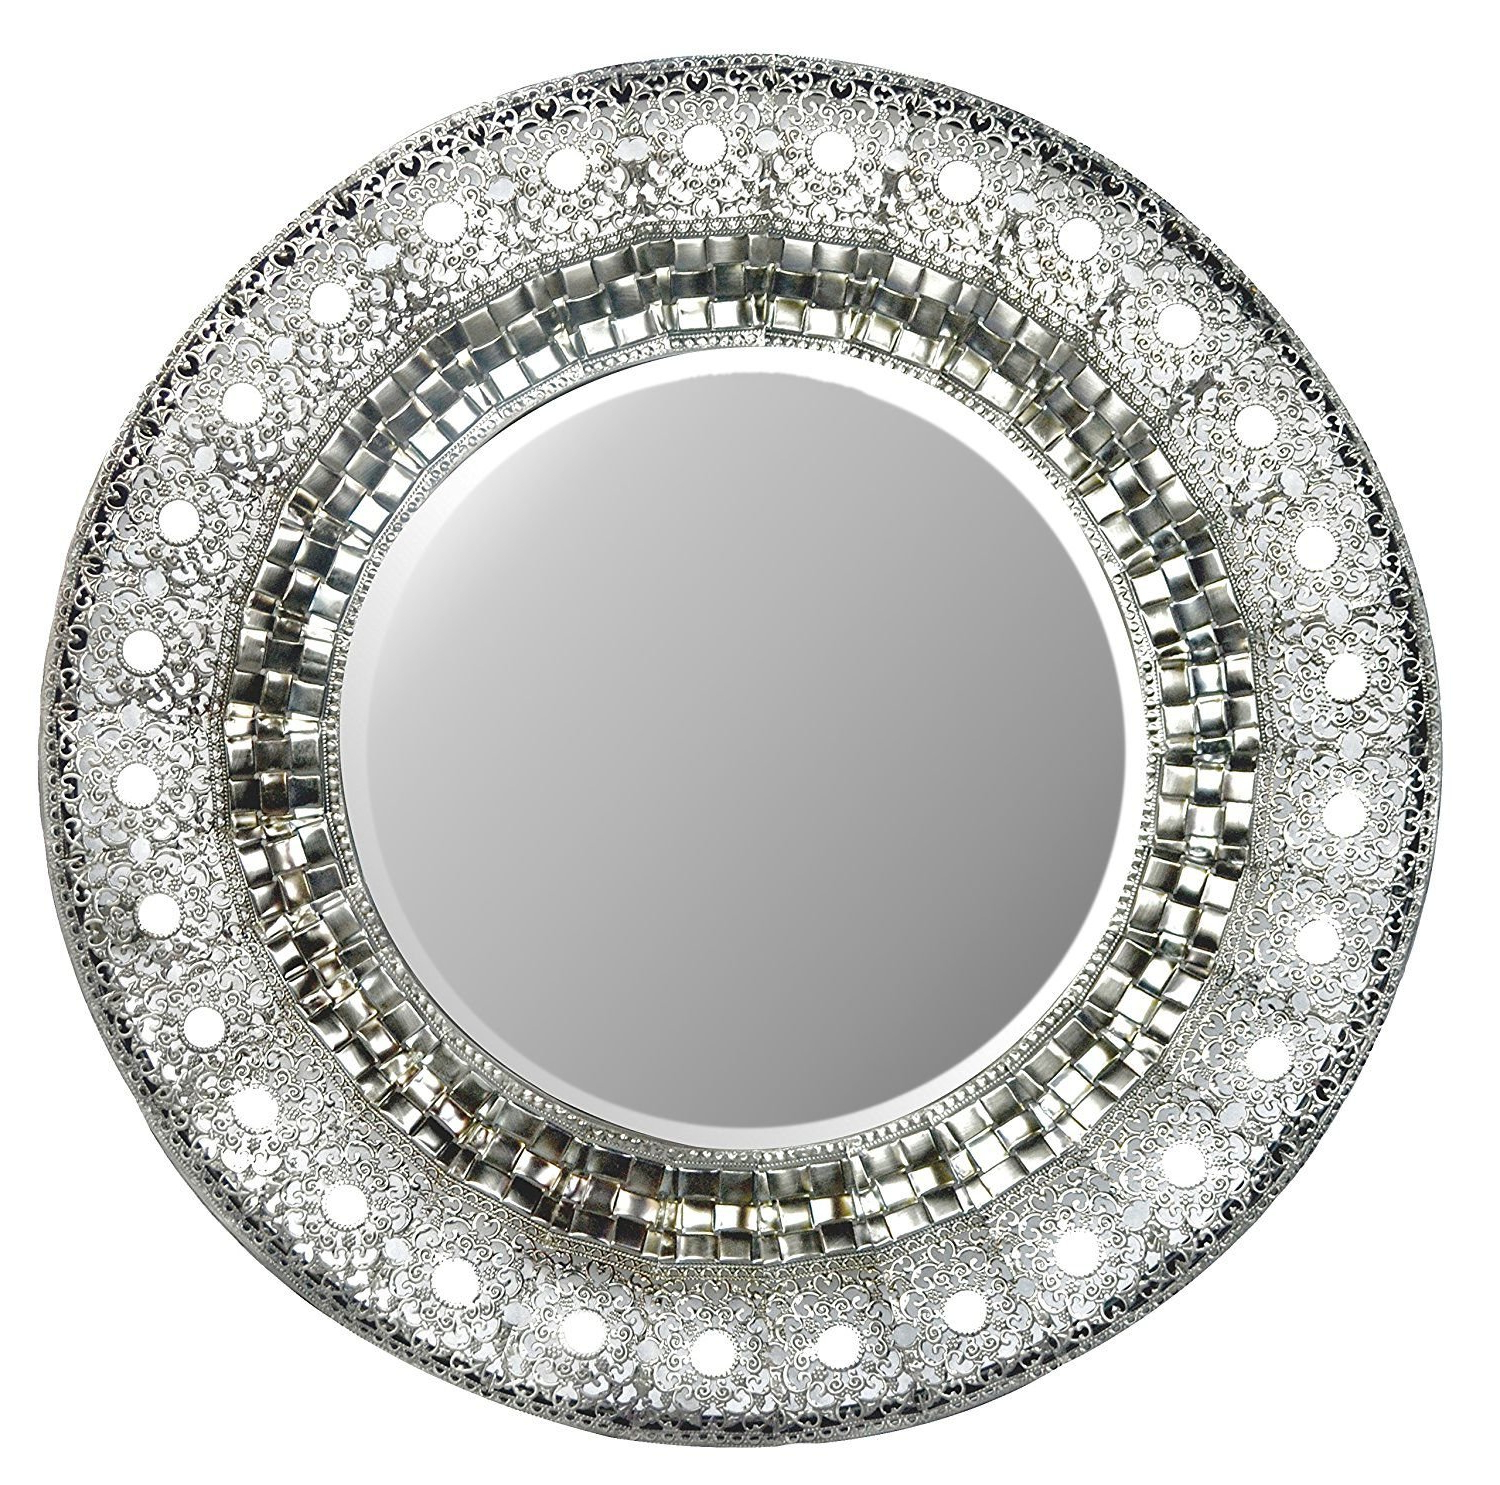 "Trendy Decorative Round Wall Mirrors Throughout Lulu Decor, 19"" Oriental Round Silver Metal Beveled Wall Mirror, Decorative Mirror For Home & Office (oriental 19"") (View 10 of 20)"